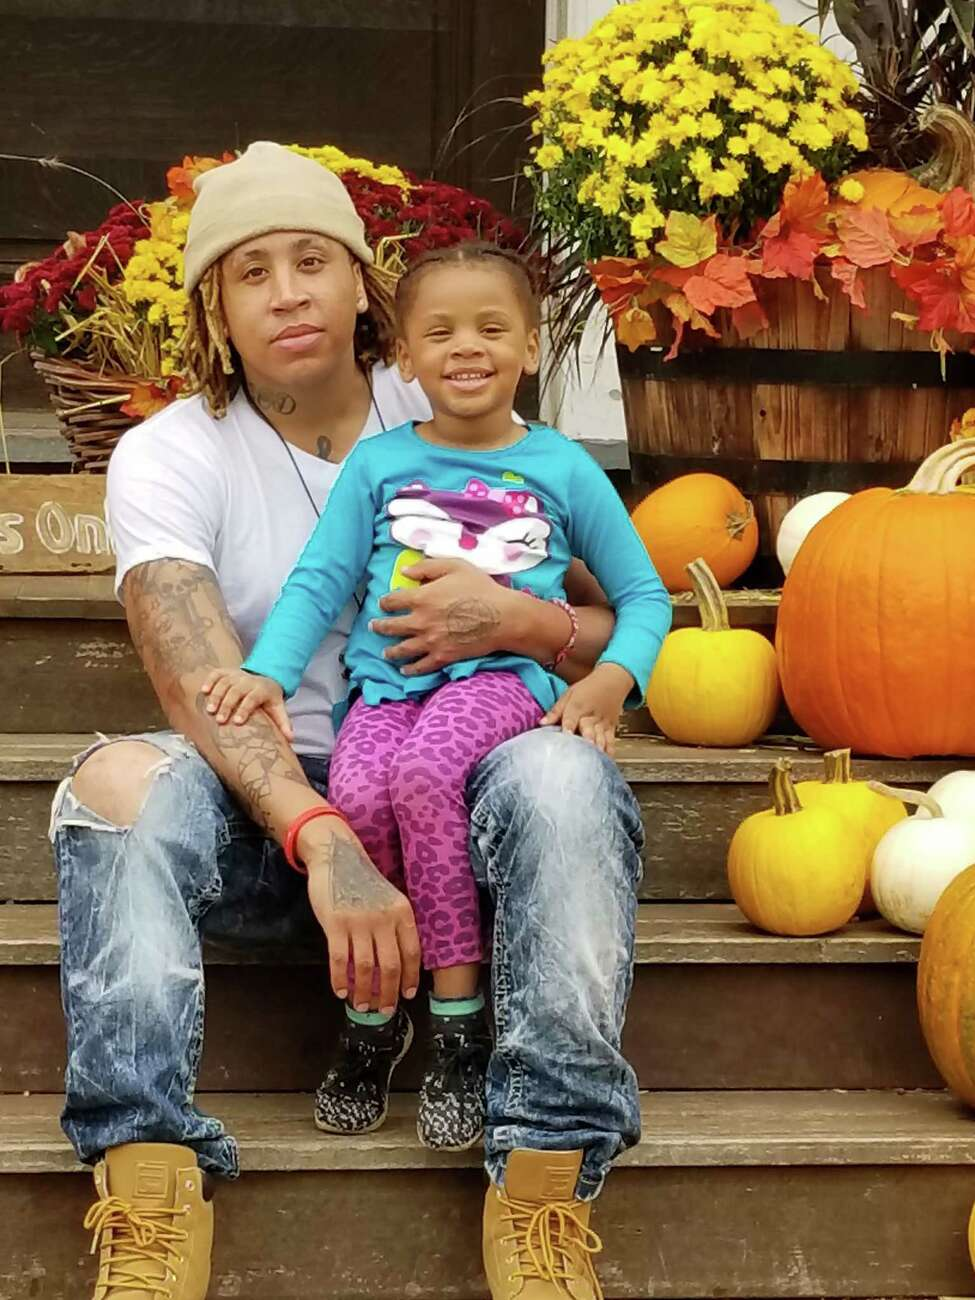 Raolik Walls, left, and his daughter, Zaylii (provided)